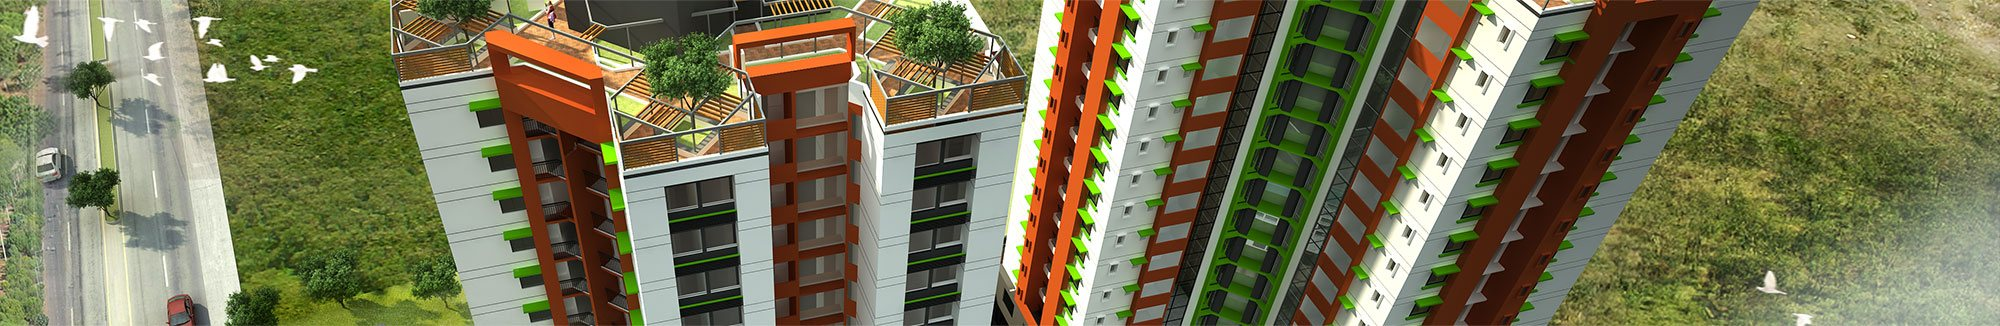 Luxury Flats & Apartments in Calicut, Kannur, Kozhikode, Aluva